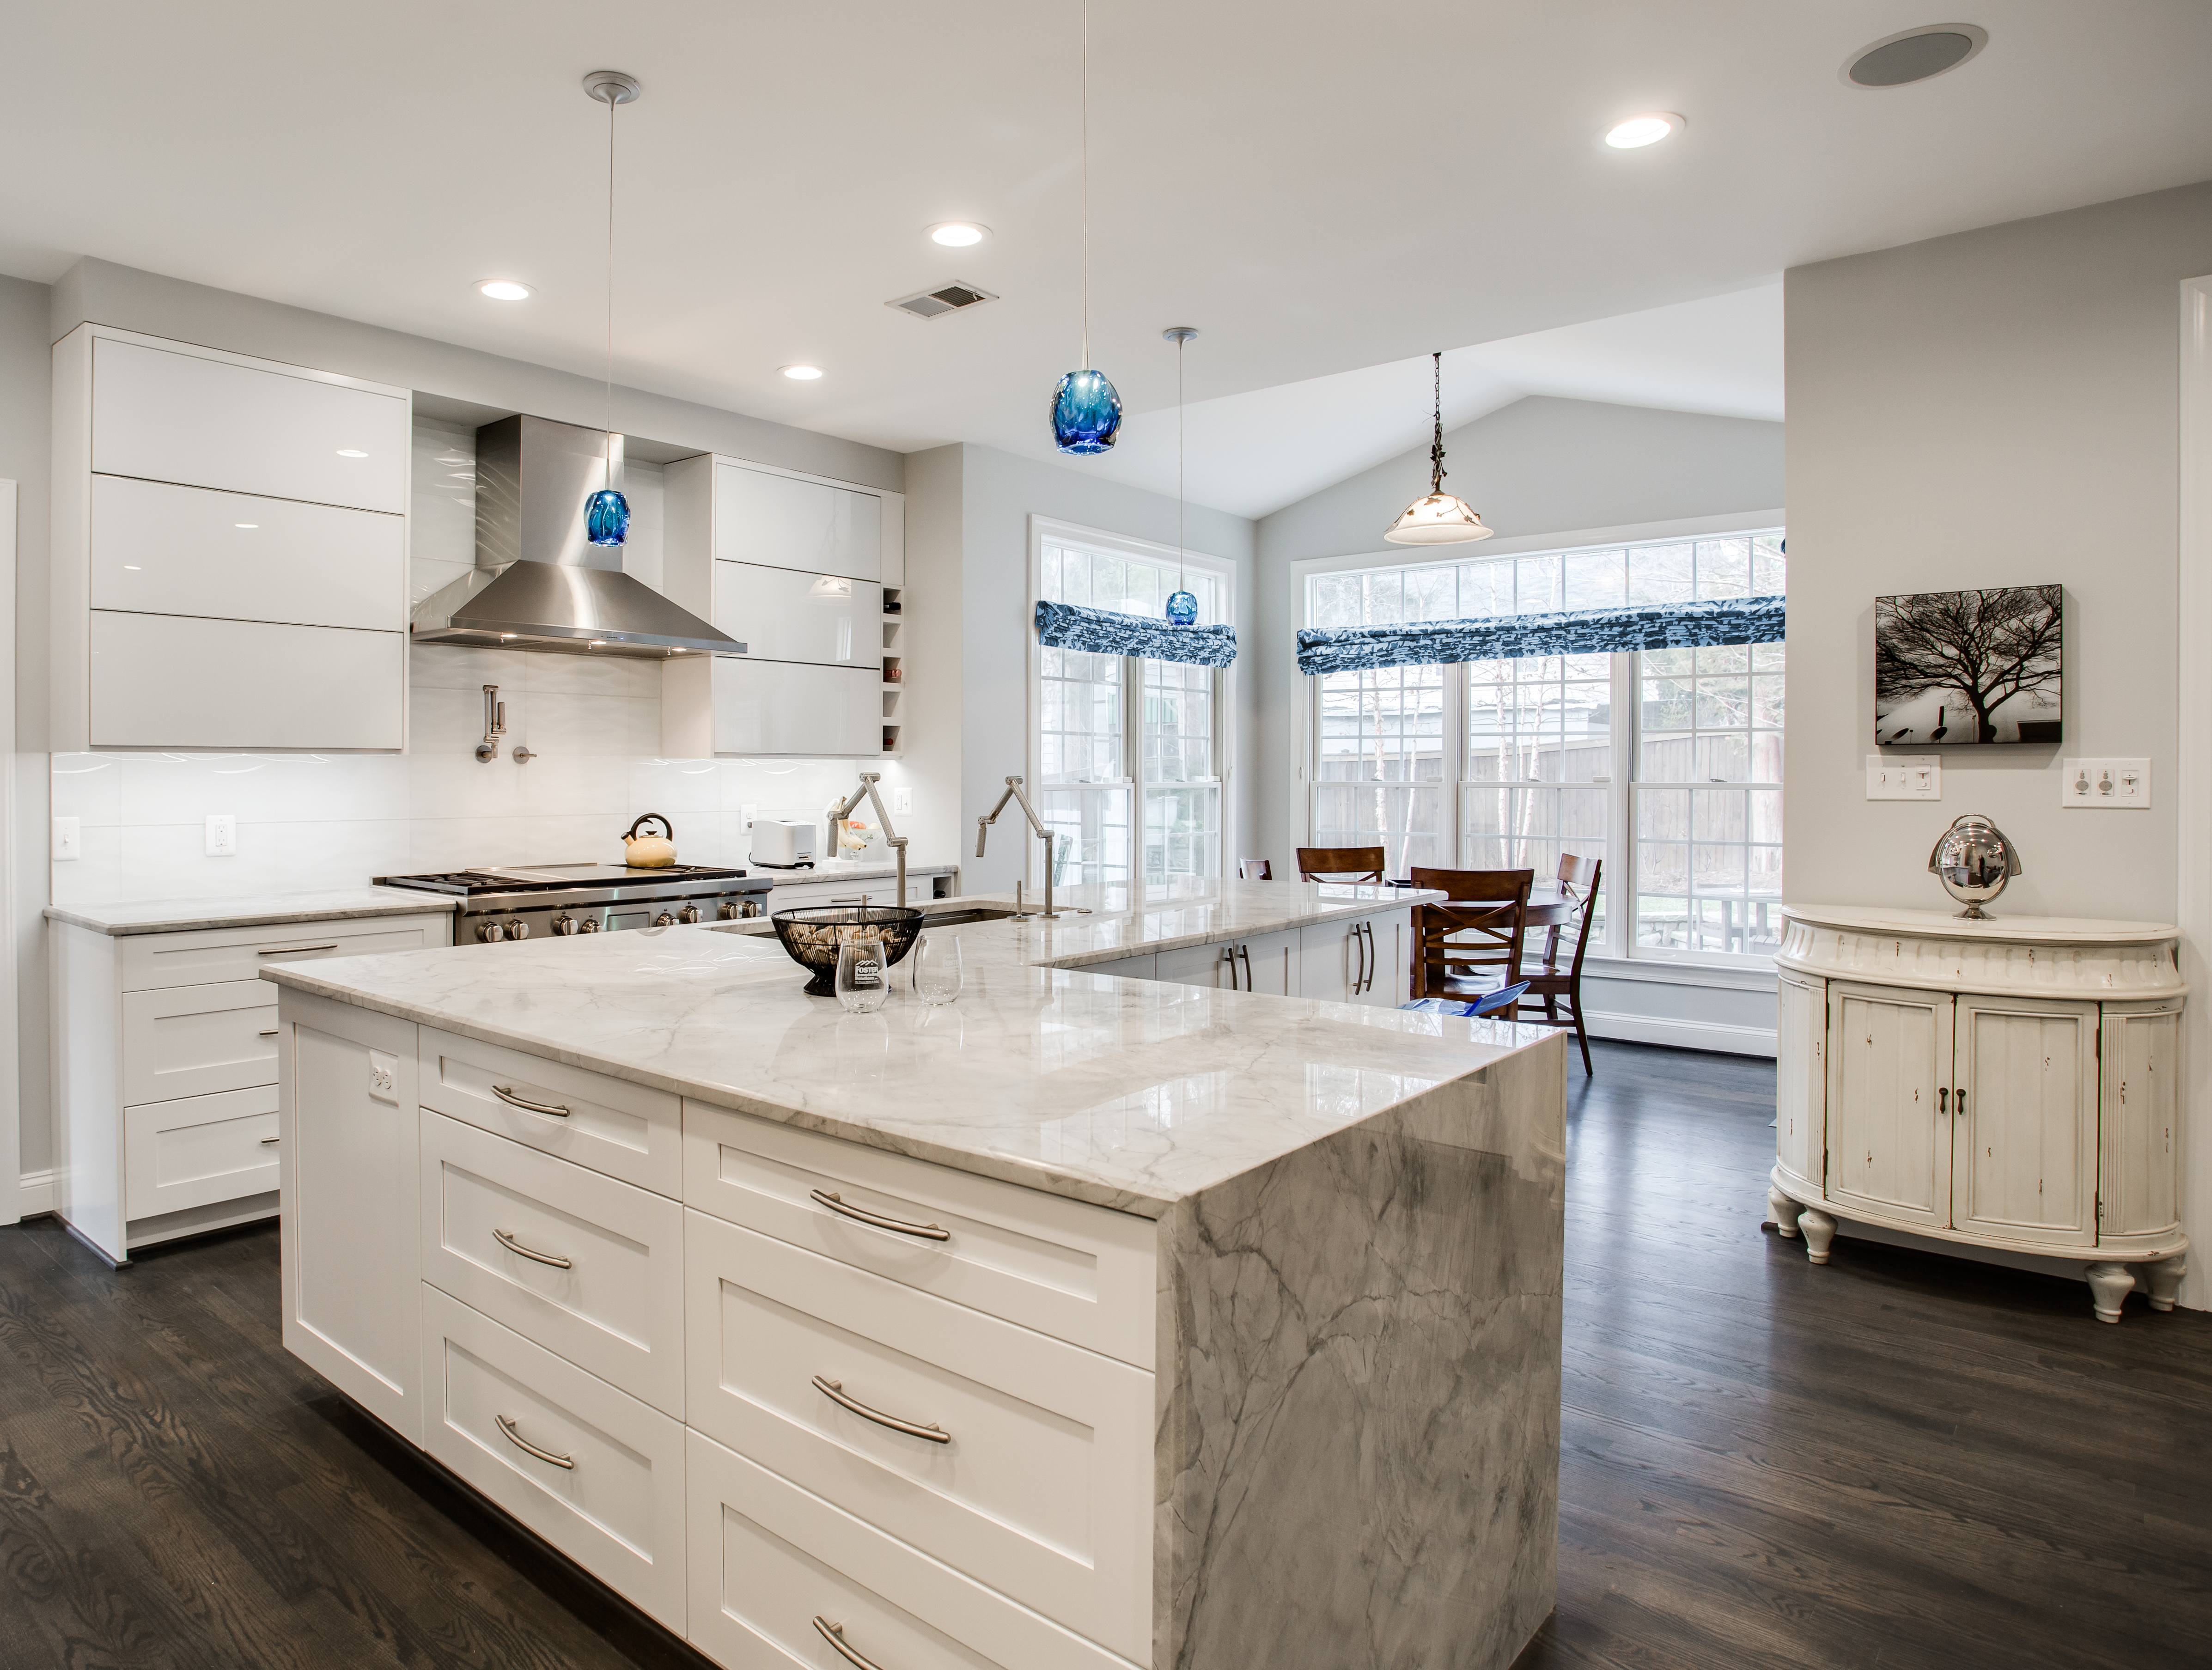 kitchen remodeling | foster remodeling solutions